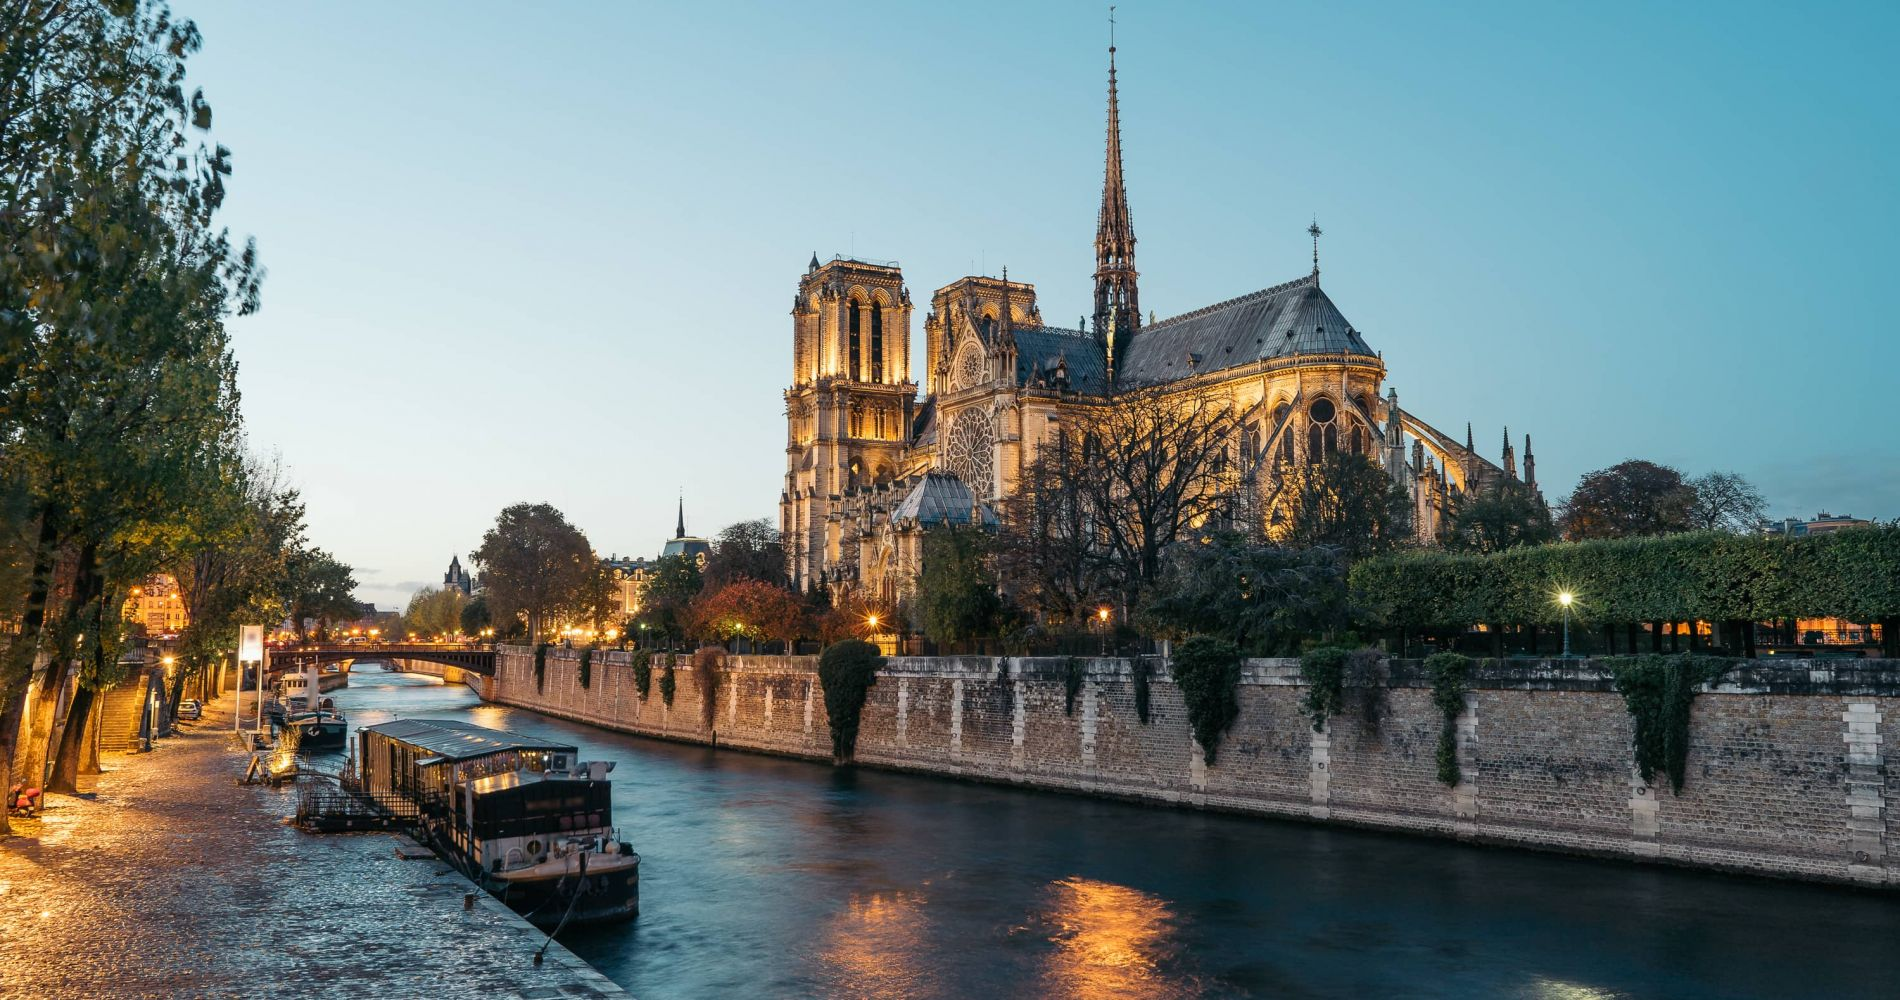 Bateaux Parisiens - Seine River Cruise and other attractions in Paris for Two